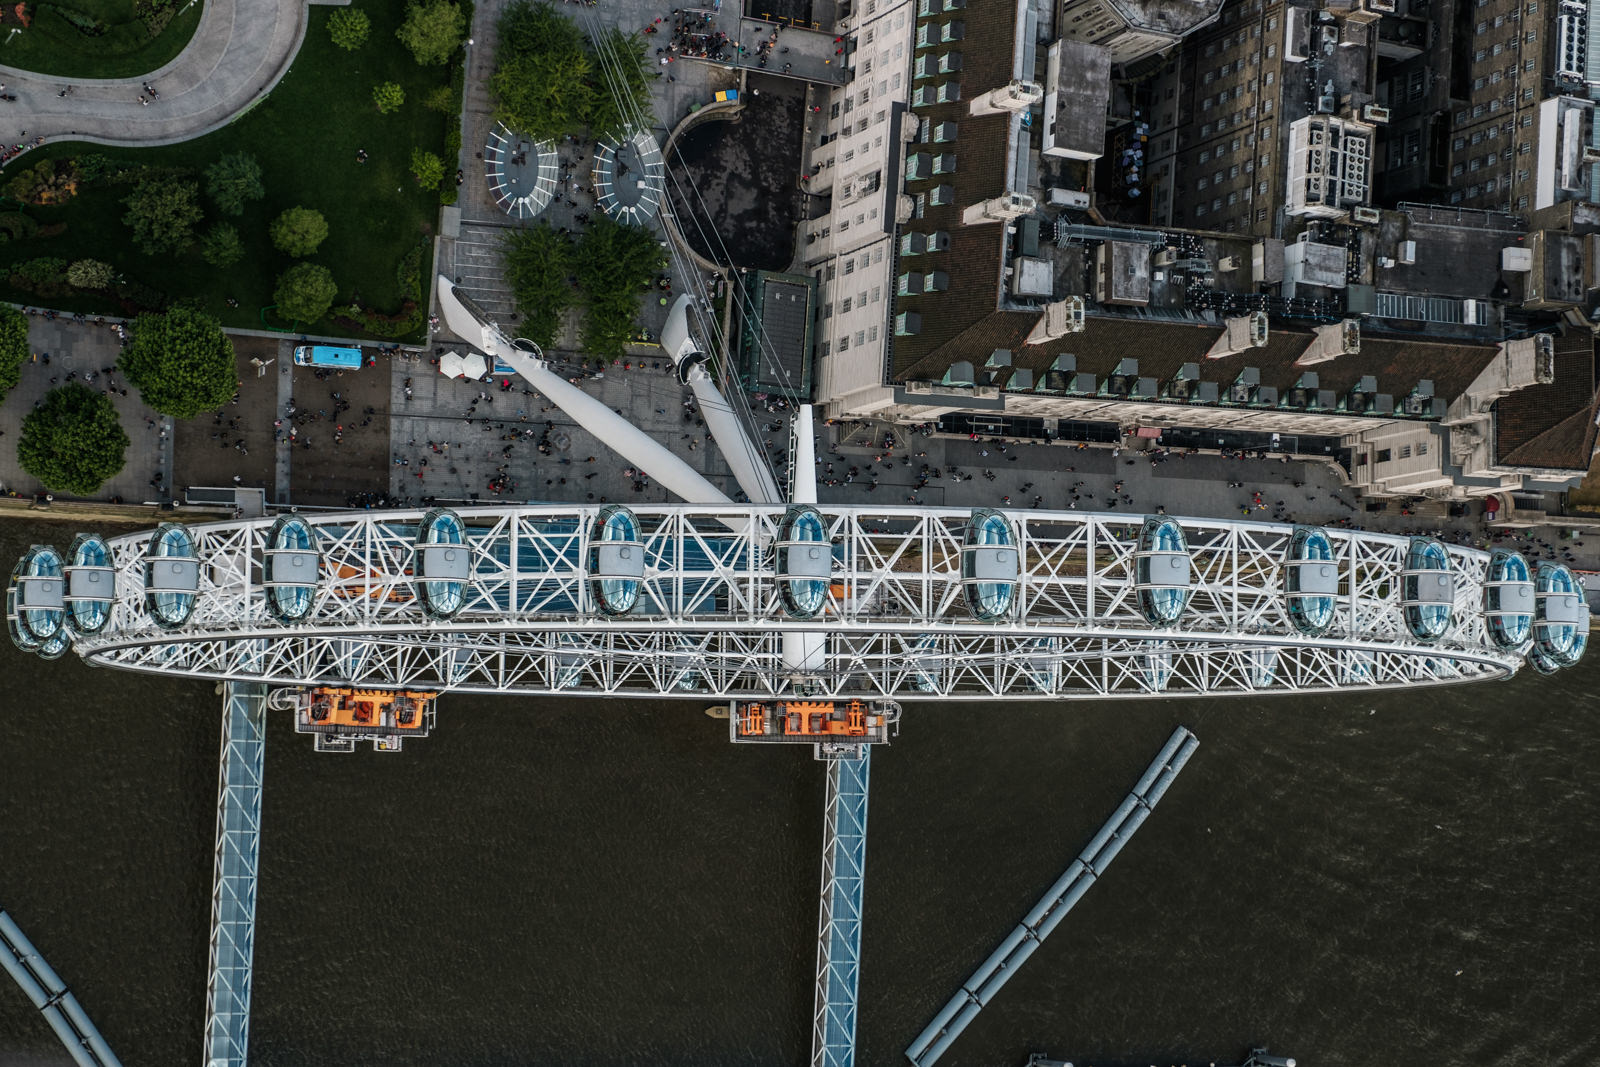 Over the London eye - with 16-55mm f2.8 @42mm, f3.2, iso200, 1/1000s